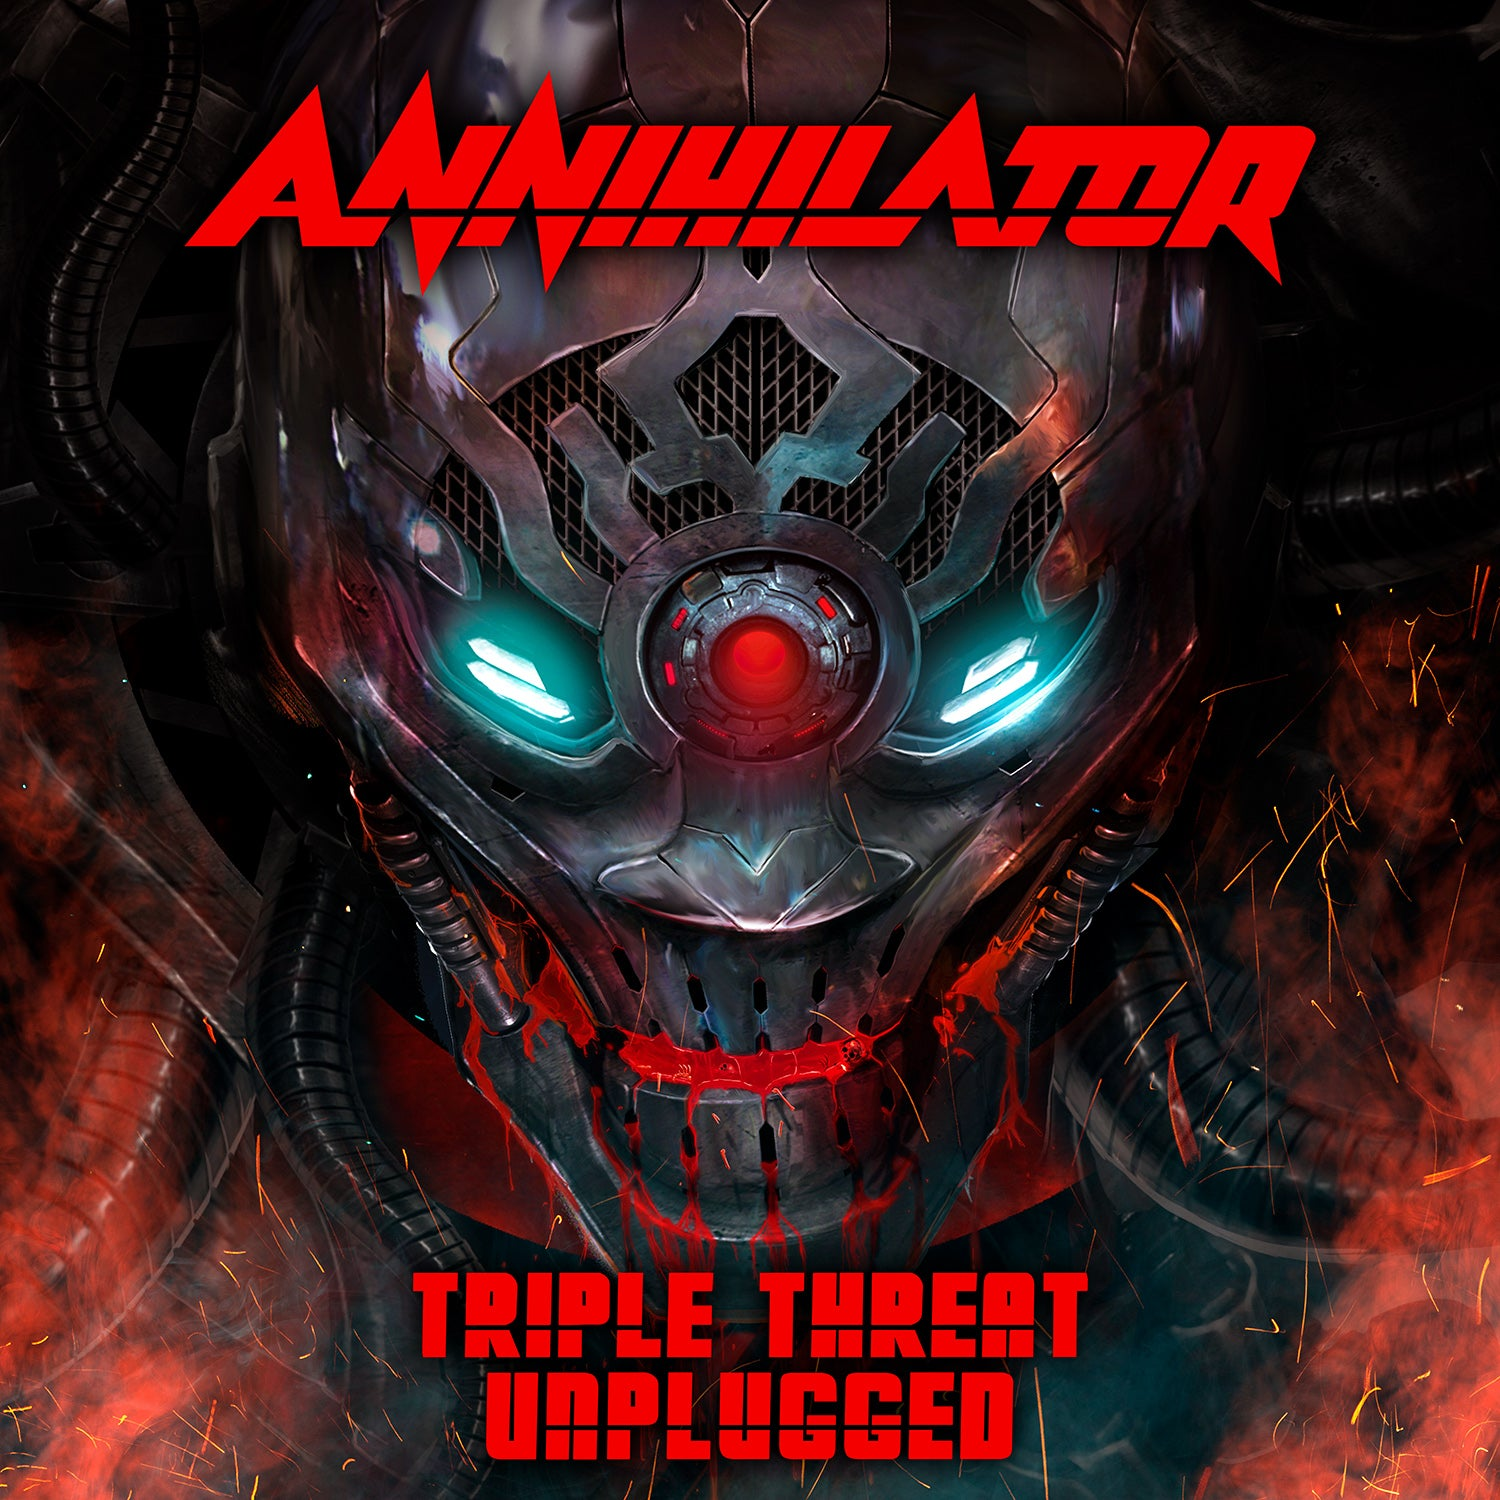 Annihilator - Triple Threat Unplugged (RSD 2020) Picture Disc Vinyl Record Album